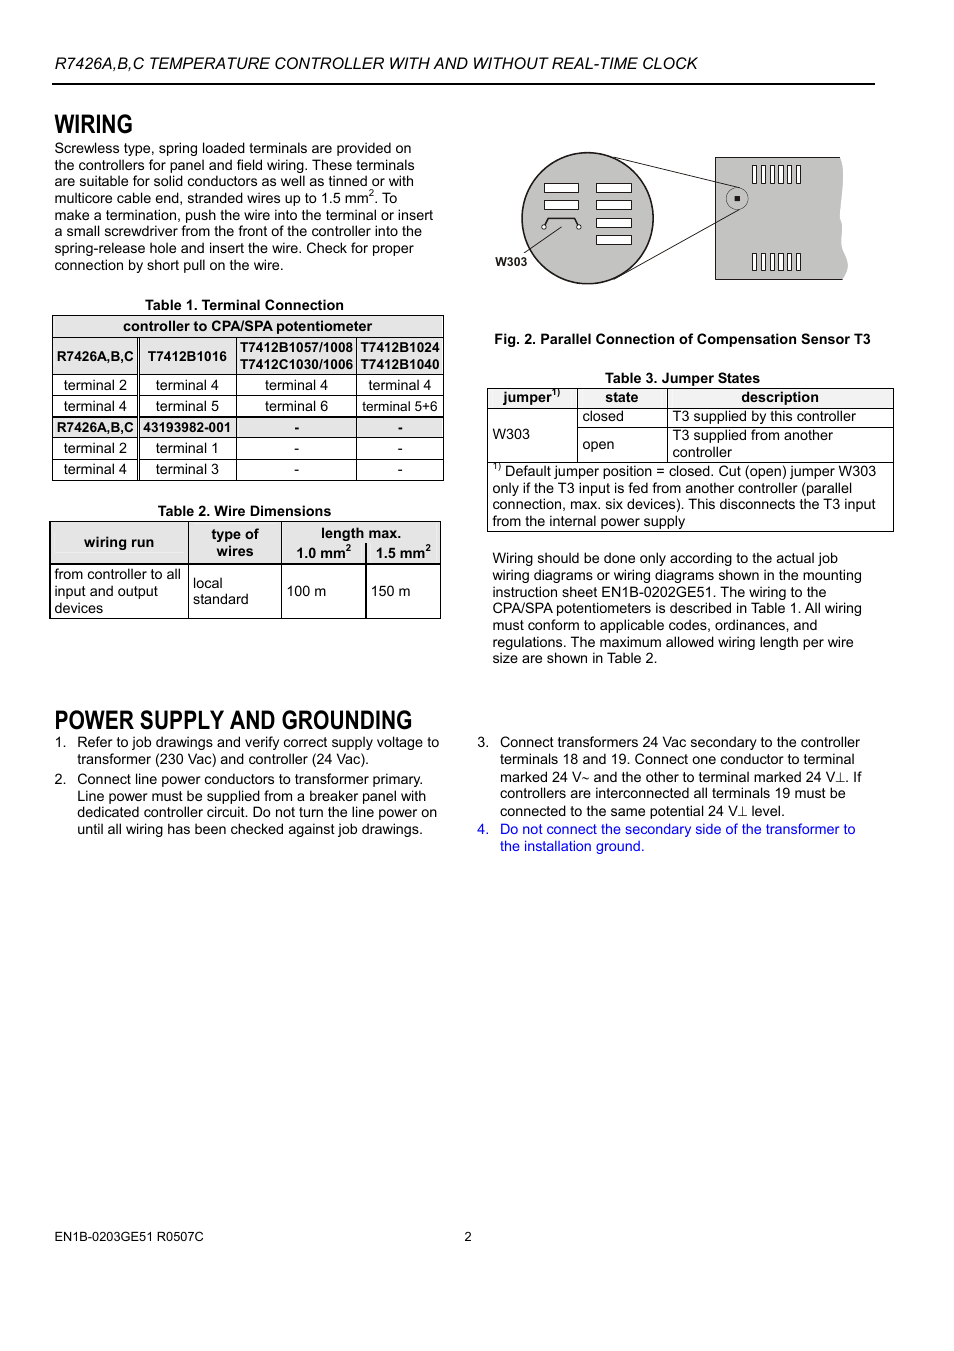 Wiring Power Supply And Grounding Honeywell Micronik 200 R7426a 24 Volt Controller Diagram User Manual Page 2 20